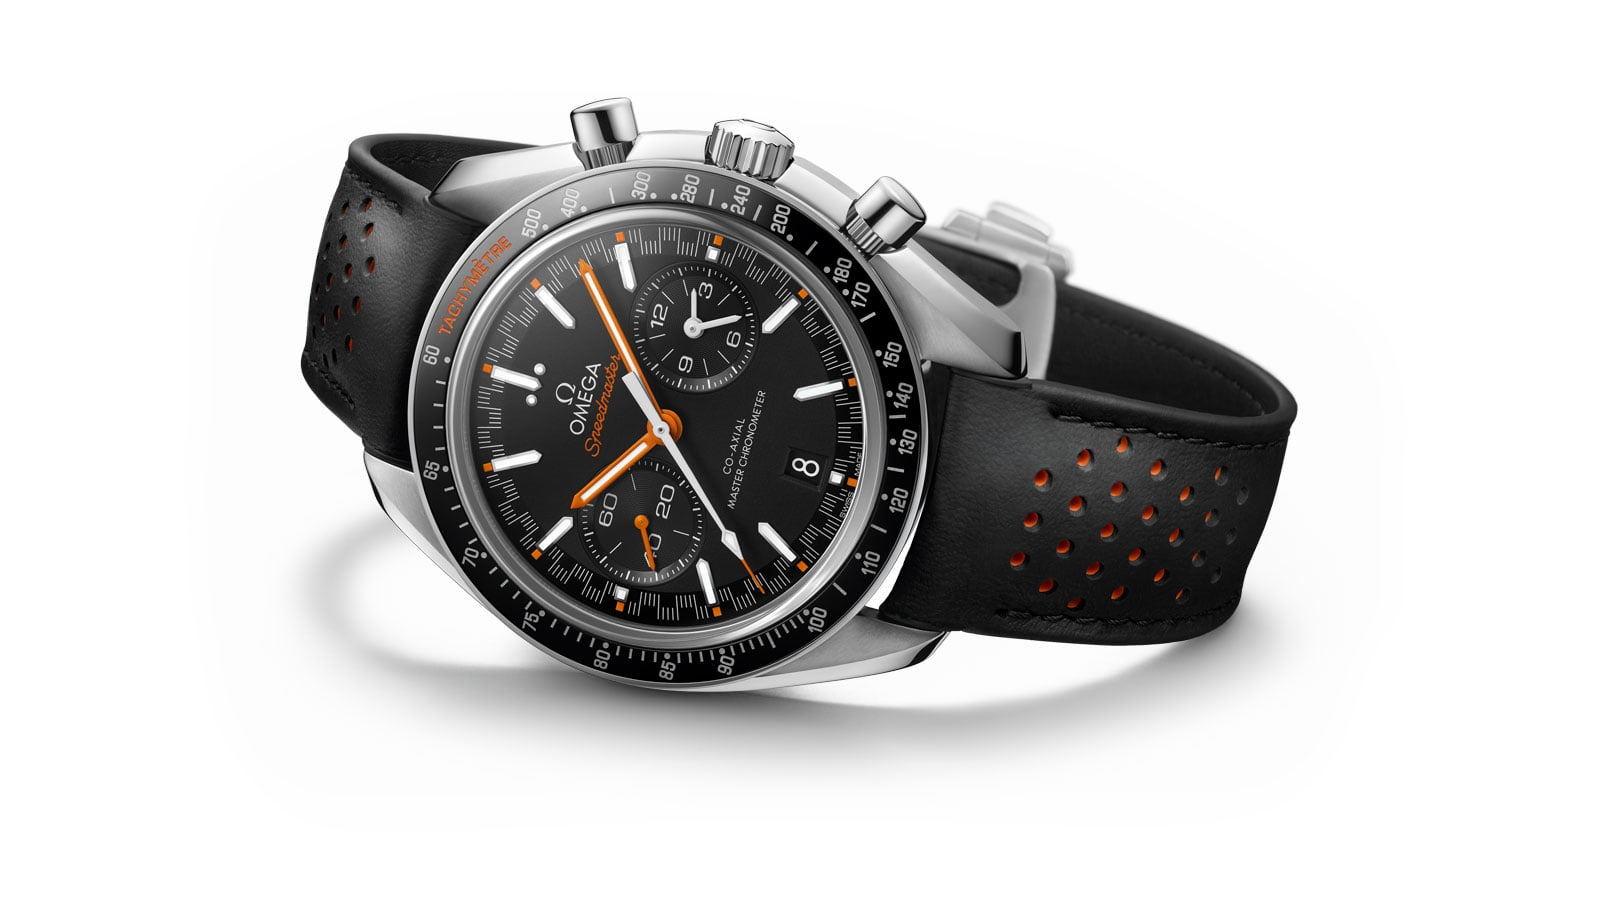 THE SPEEDMASTER RACING MASTER CHRONOMETER